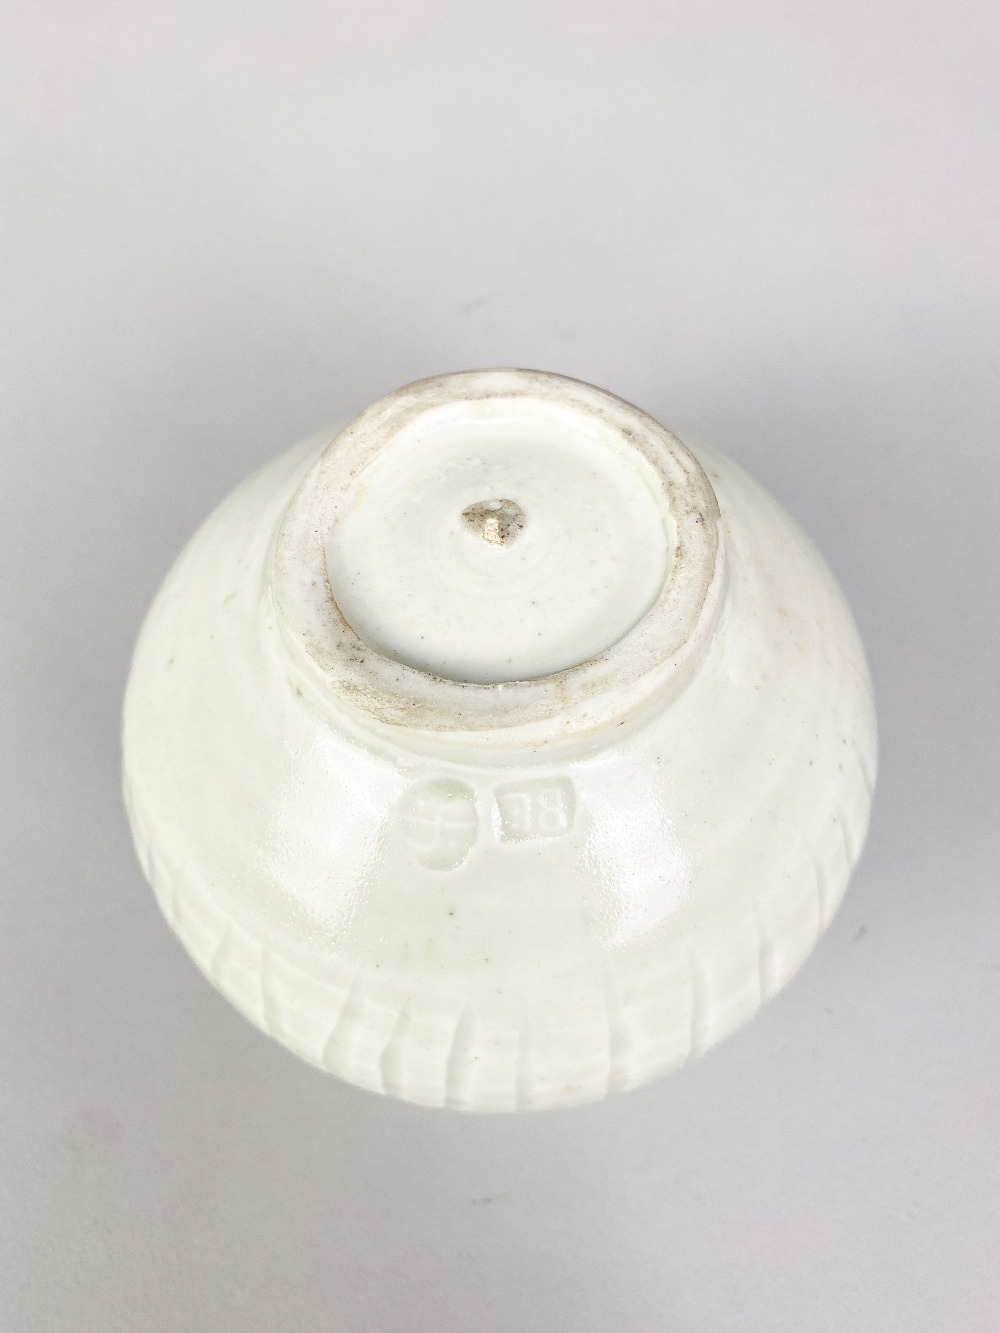 BERNARD LEACH (1887-1979) for Leach Pottery; a fluted porcelain pot covered in celadon glaze, - Image 4 of 5